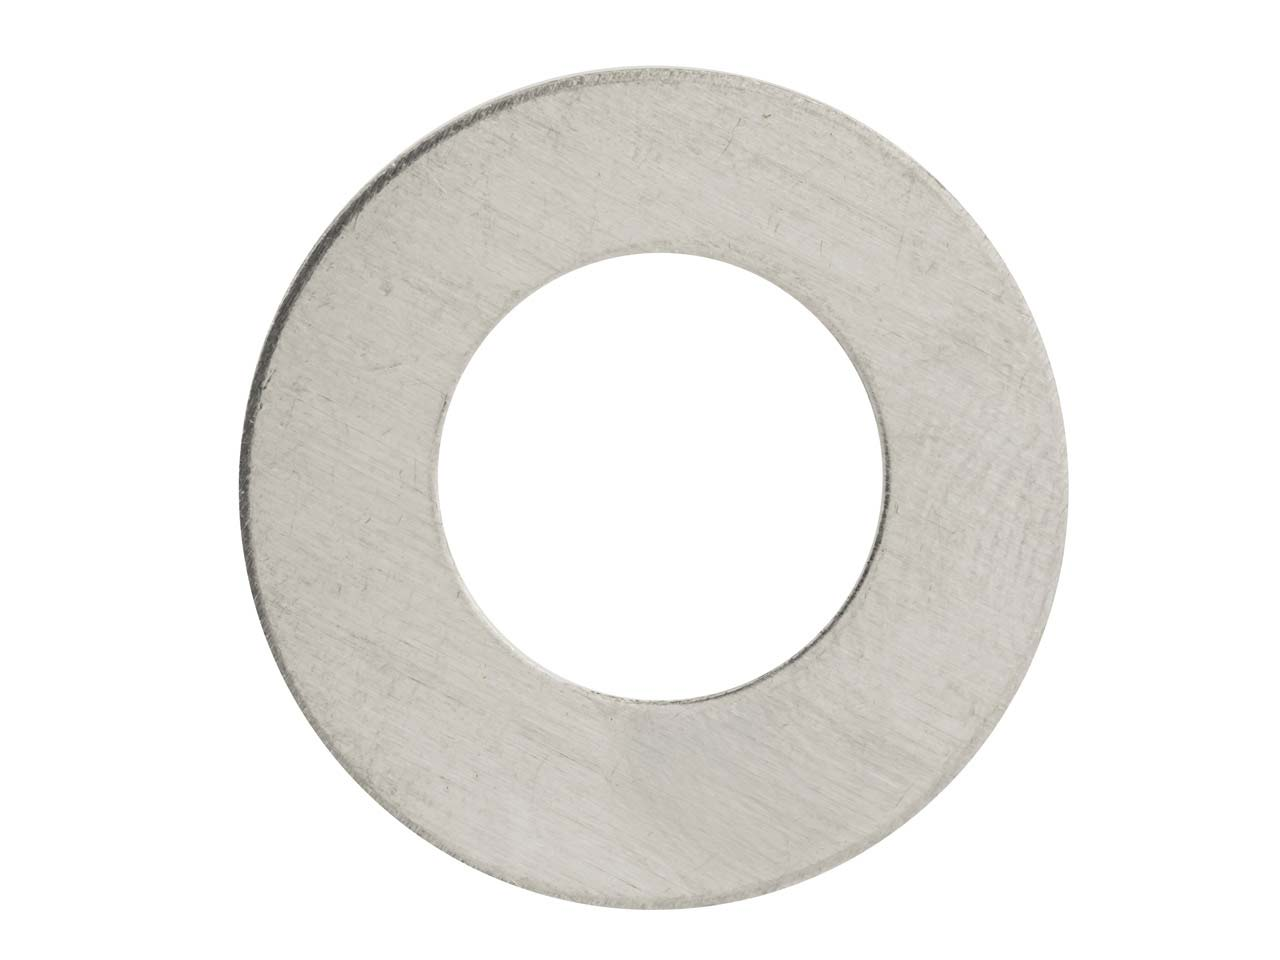 Impressart Aluminium Round Washer  25mm Stamping Blank Pack of 15